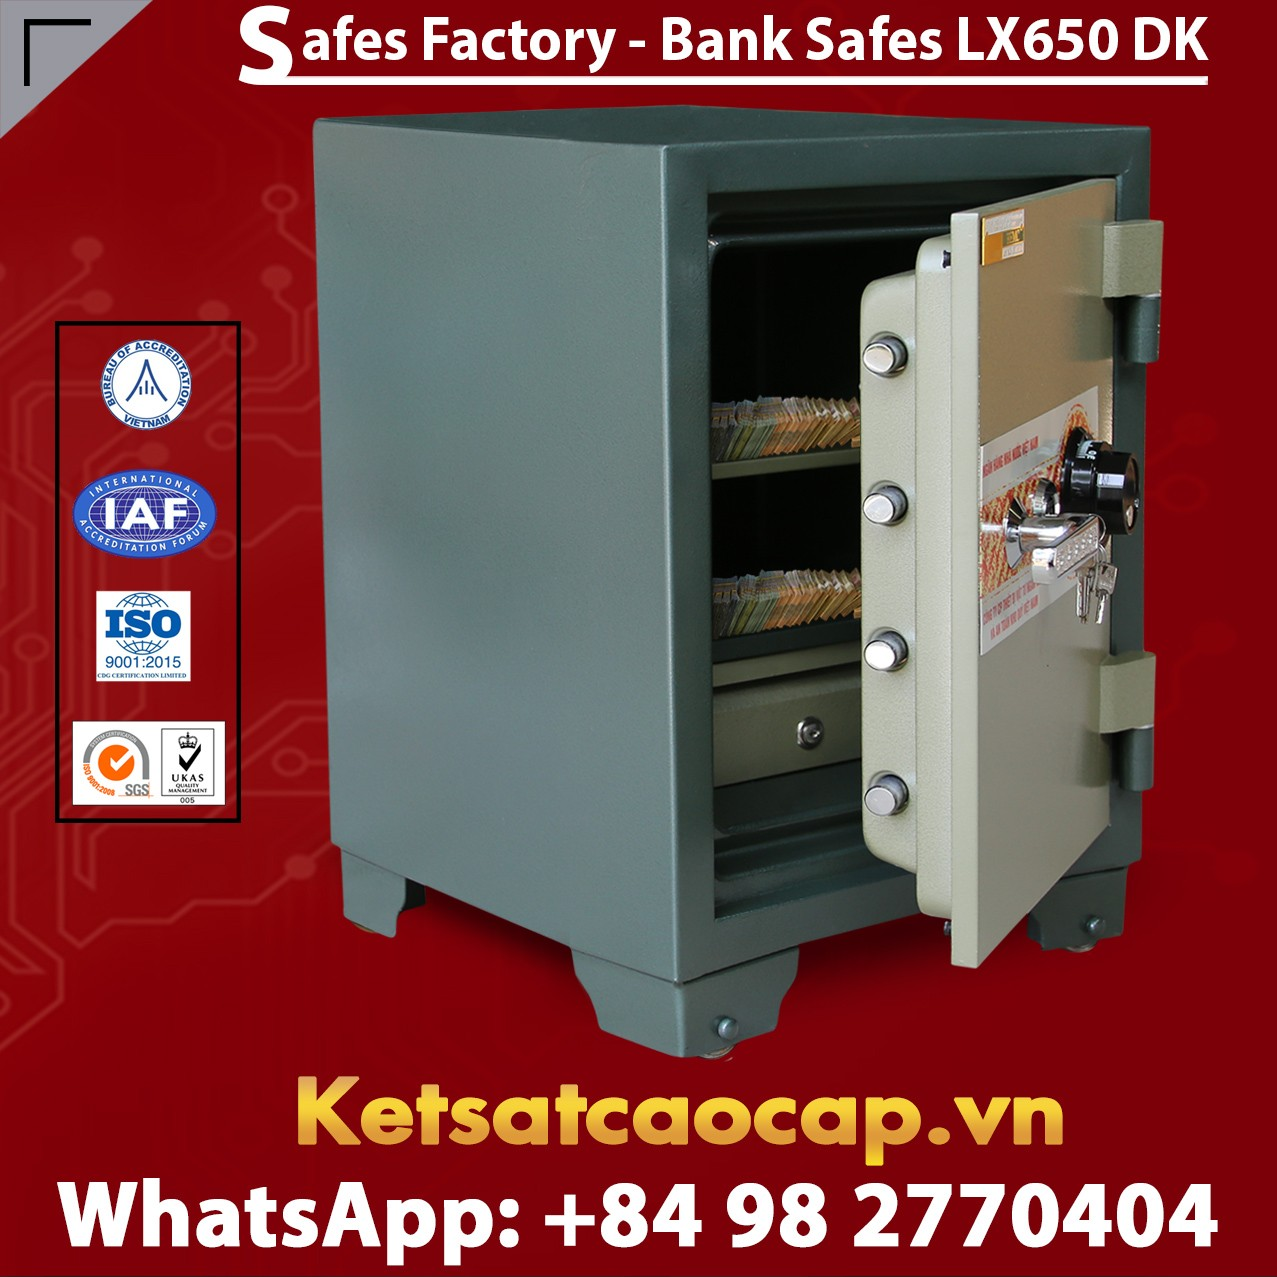 Bank Safes LX650 DK Customized Bank Safes Factory Price For Wholesale